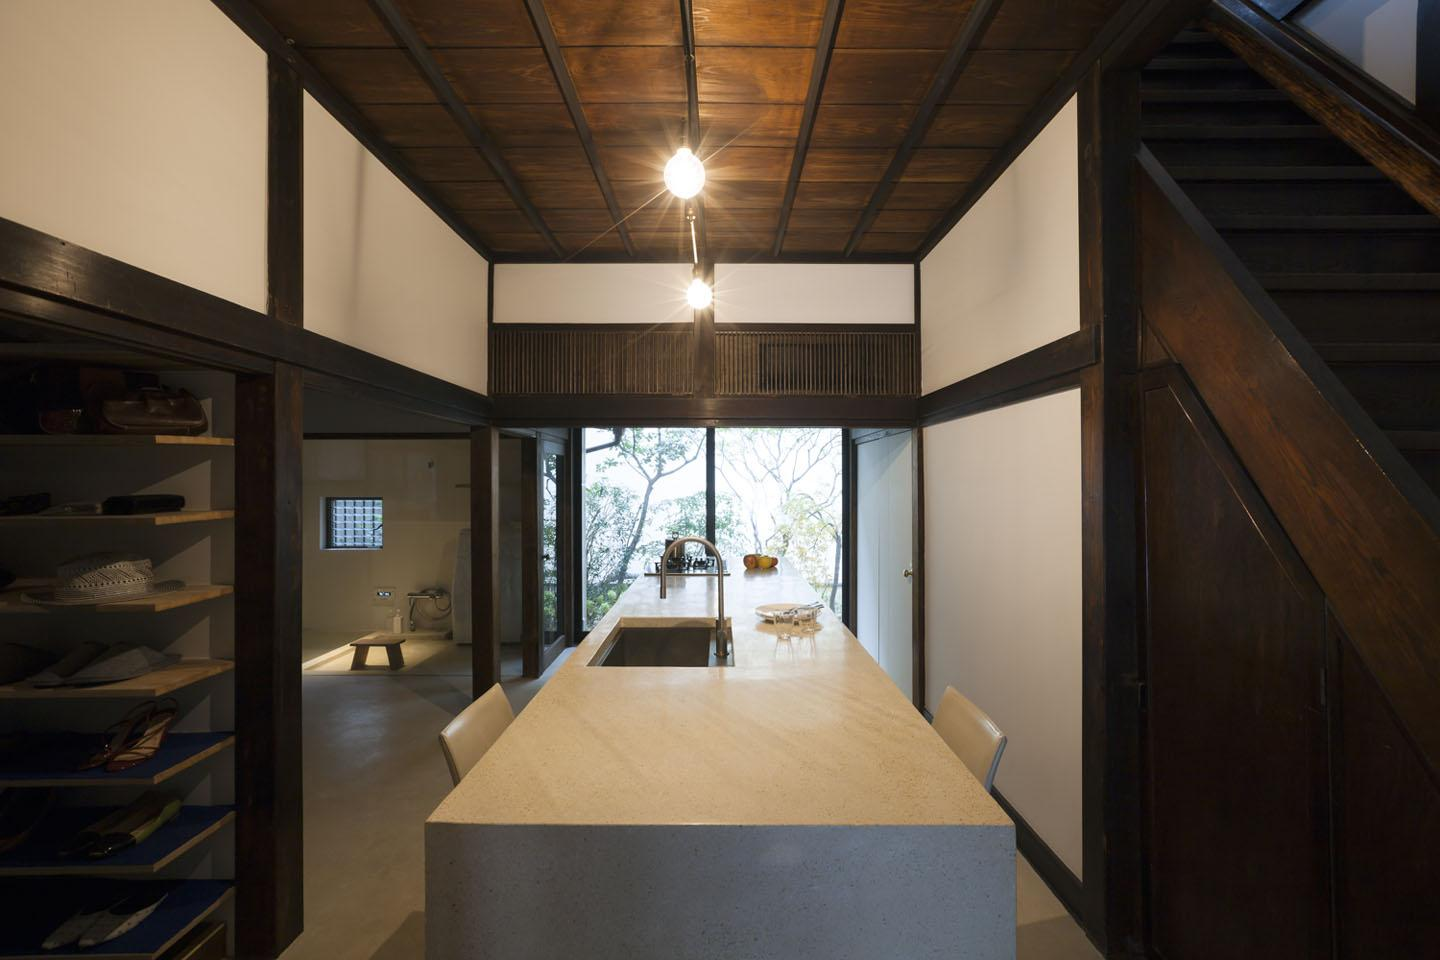 建築家:相原まどか「古民家の家/Traditional Japanese House with Modern Interior」